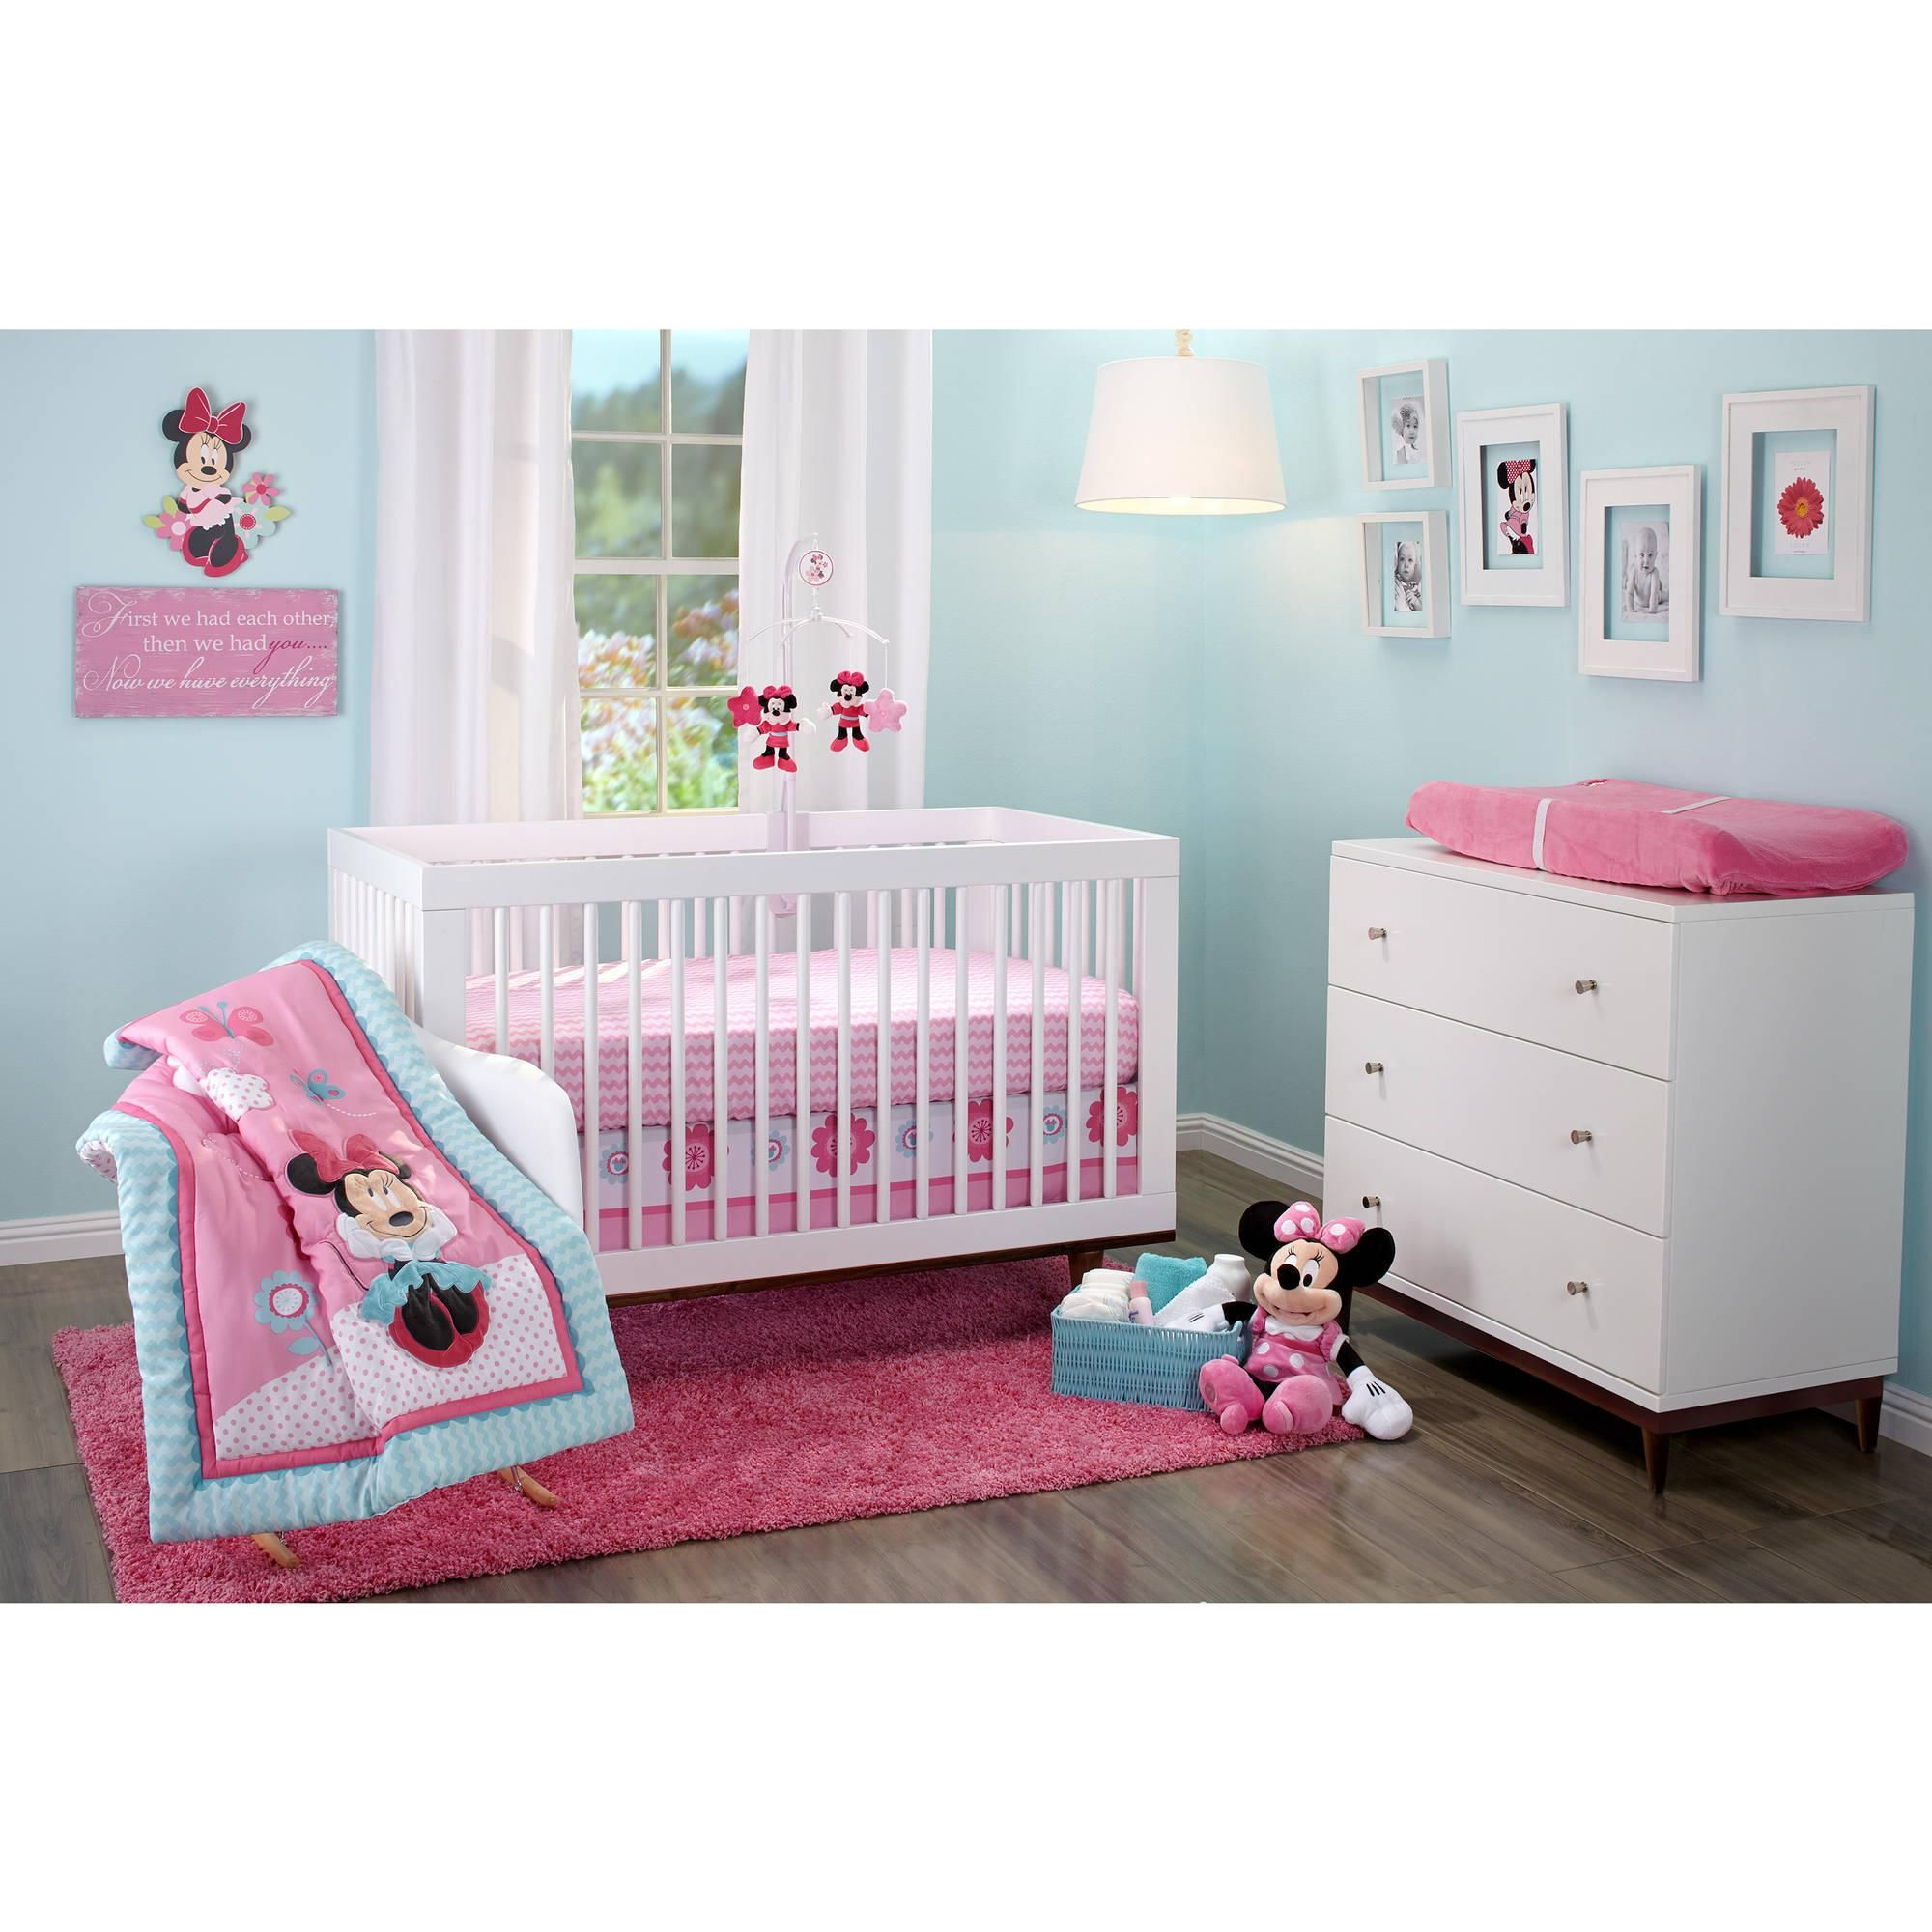 bedding disney minnie mouse happy day 3piece crib bedding set walmart com